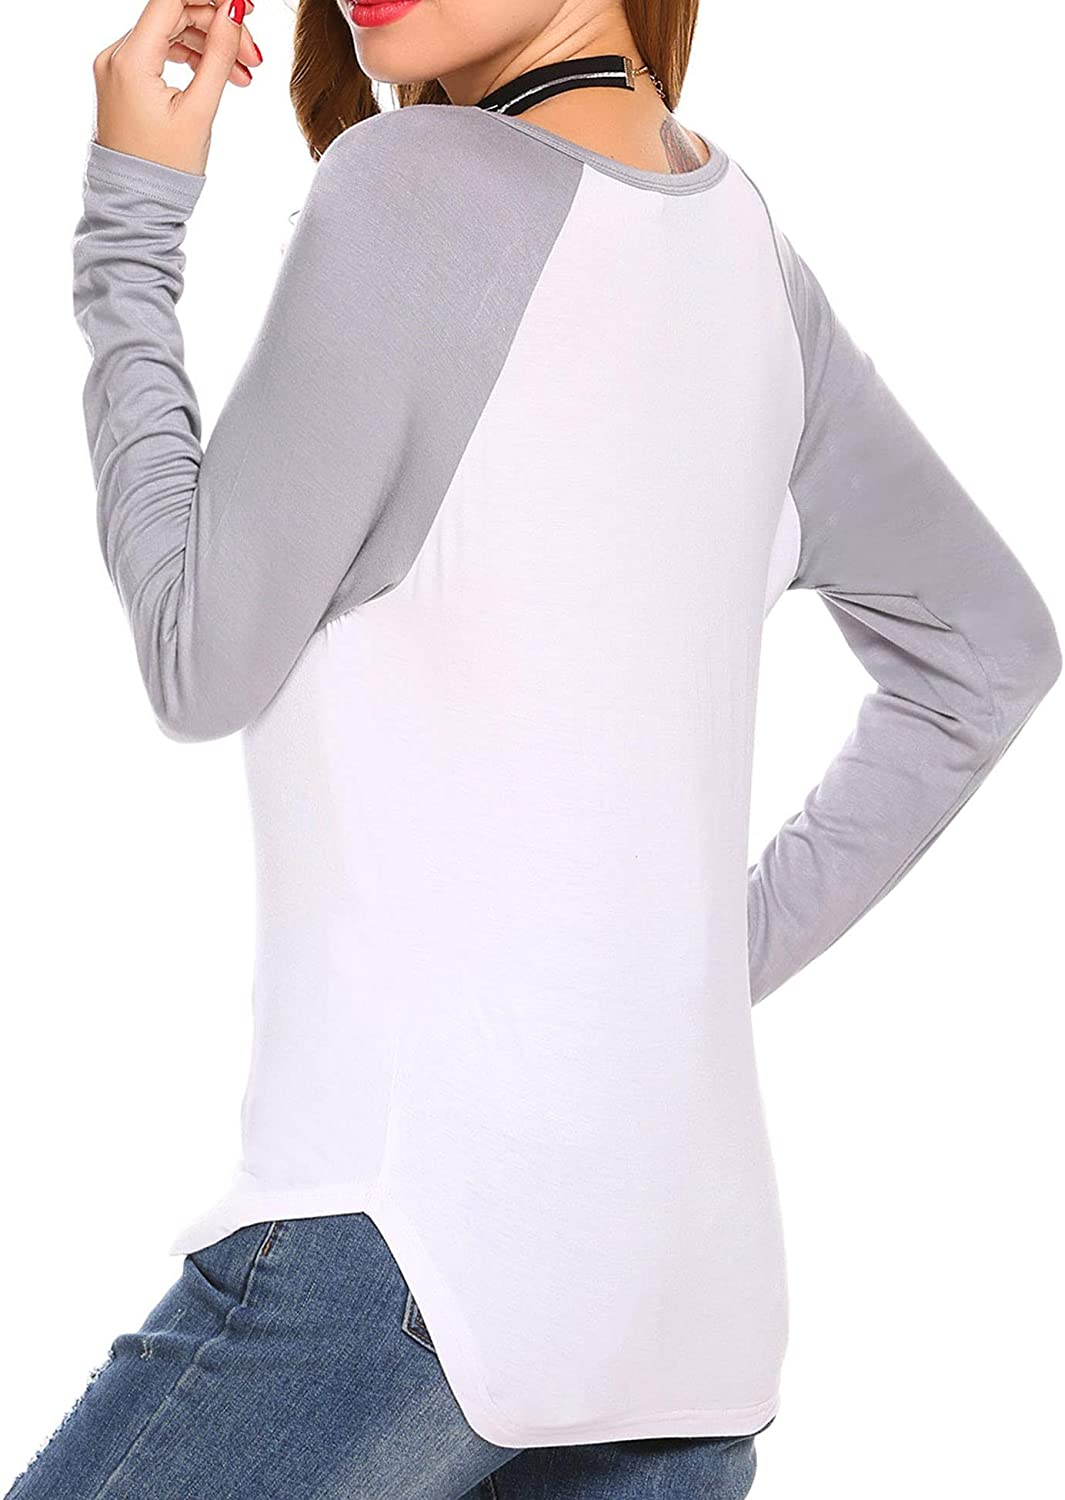 S-XXL Esqlotre Womens Casual Long Sleeve Patchwork Henley Shirt Tunic Tops Blouse